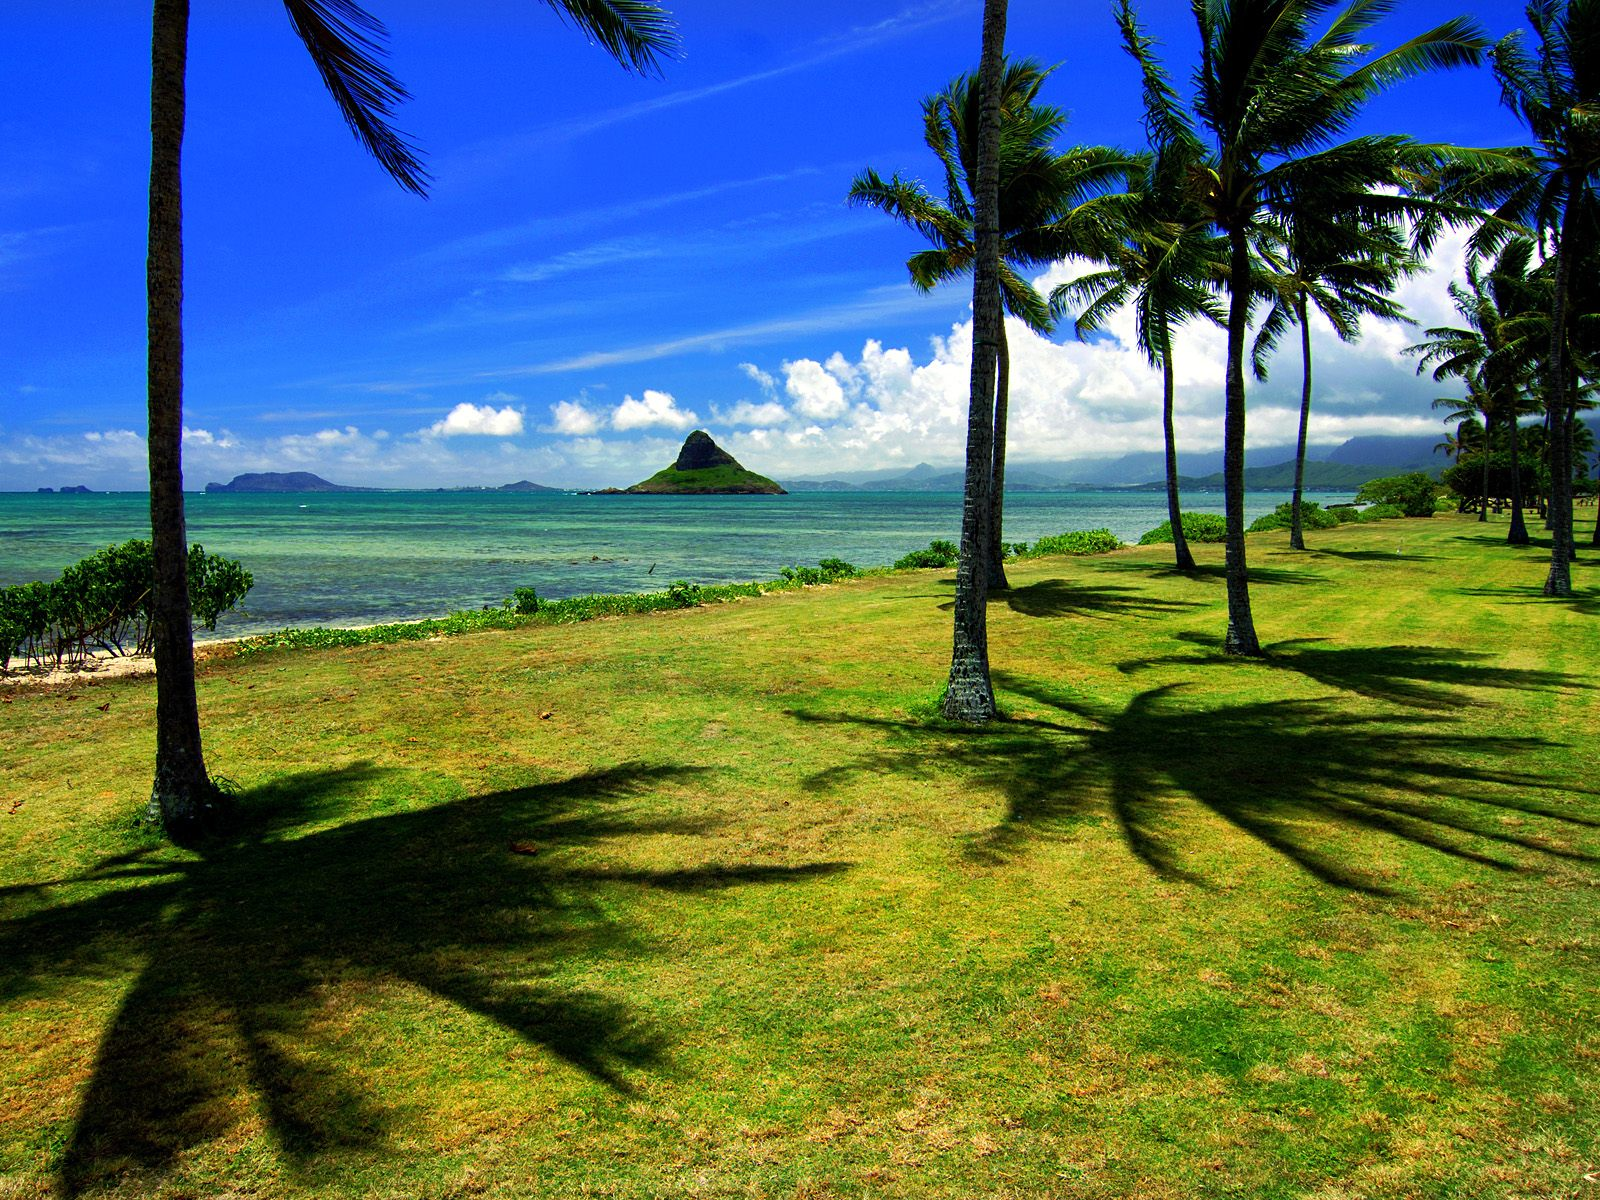 Chinaman's Hat Hawaii 483.12 Kb